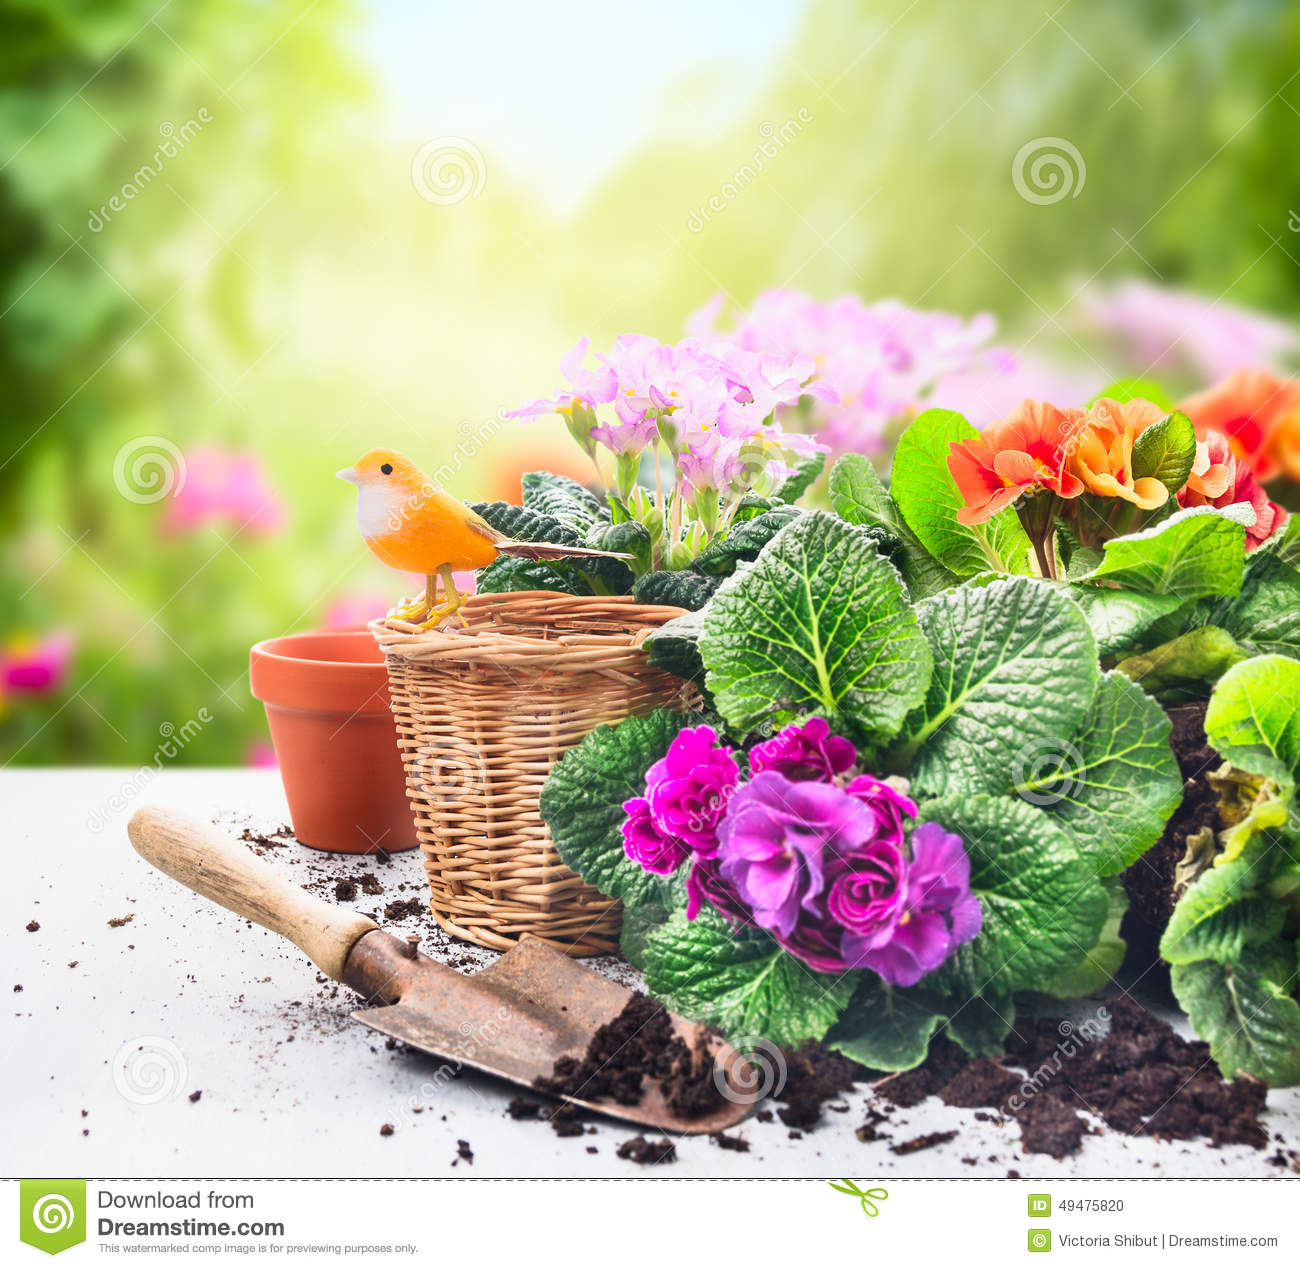 Gardening Set On Table With Flowers Pots Potting Soil